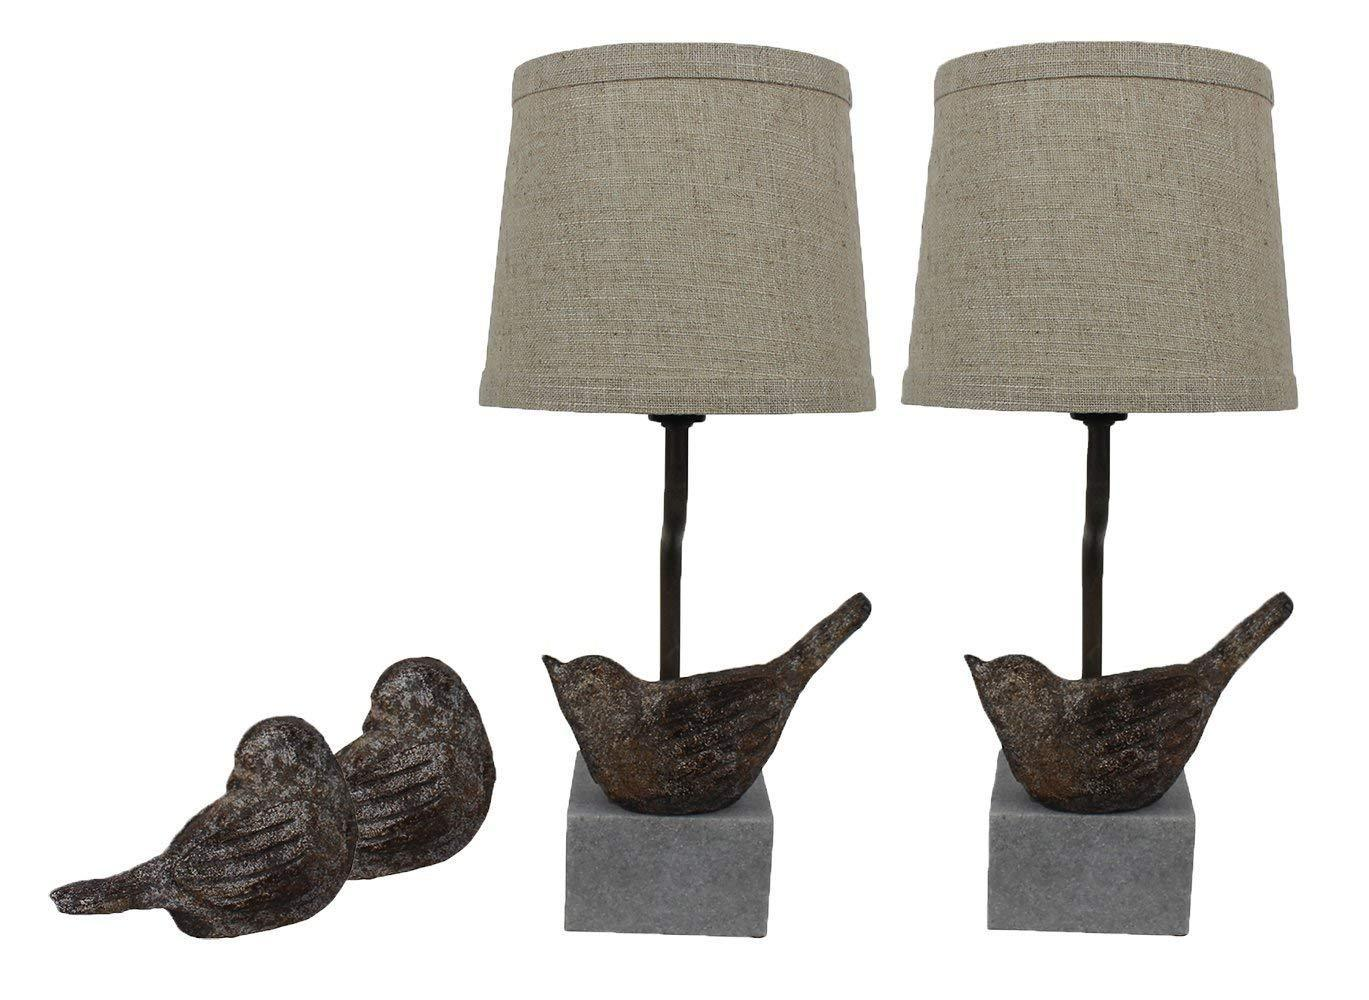 urbanest set bird mini accent lamps with shades within lamp ideas table modern runner patterns homesense tables mosaic side round allen jones inch tall nightstands square winsome